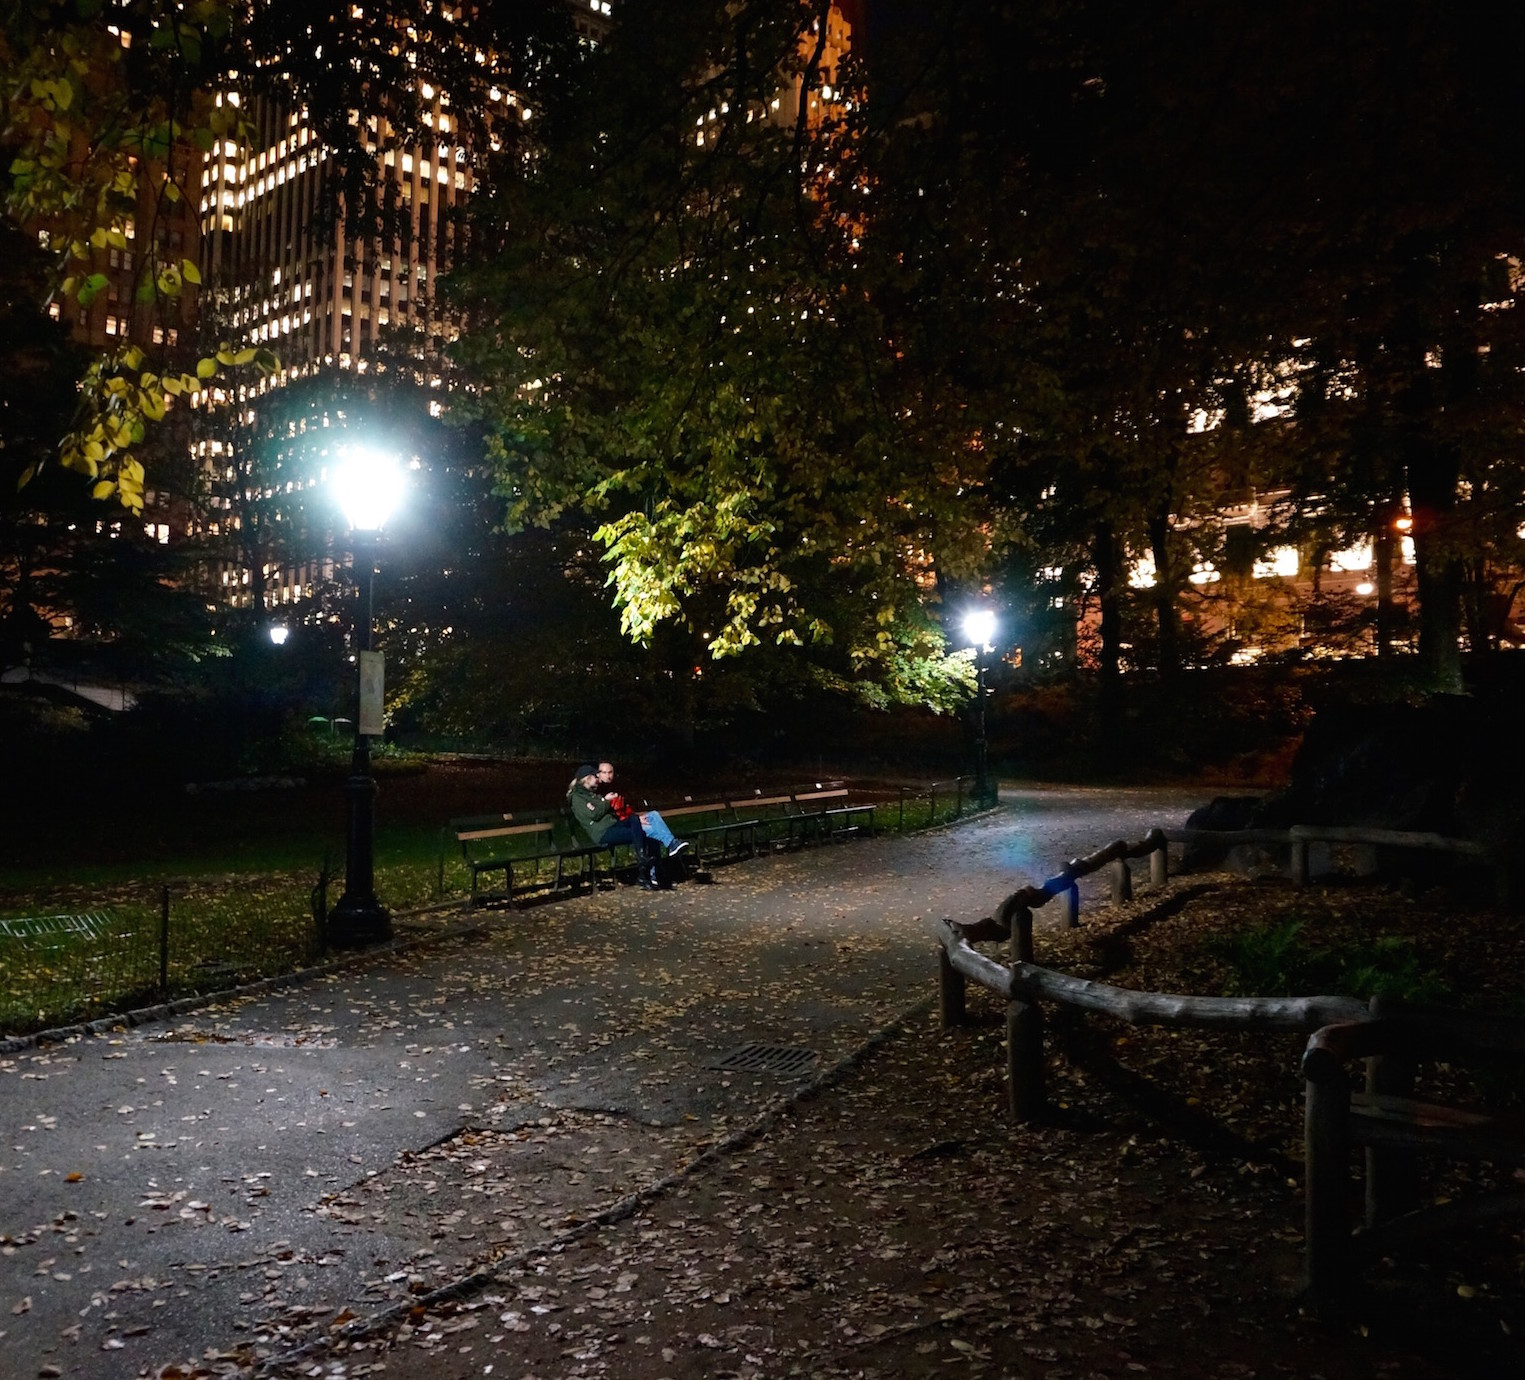 Central Park Nyc: A Walk In The Dark In Central Park